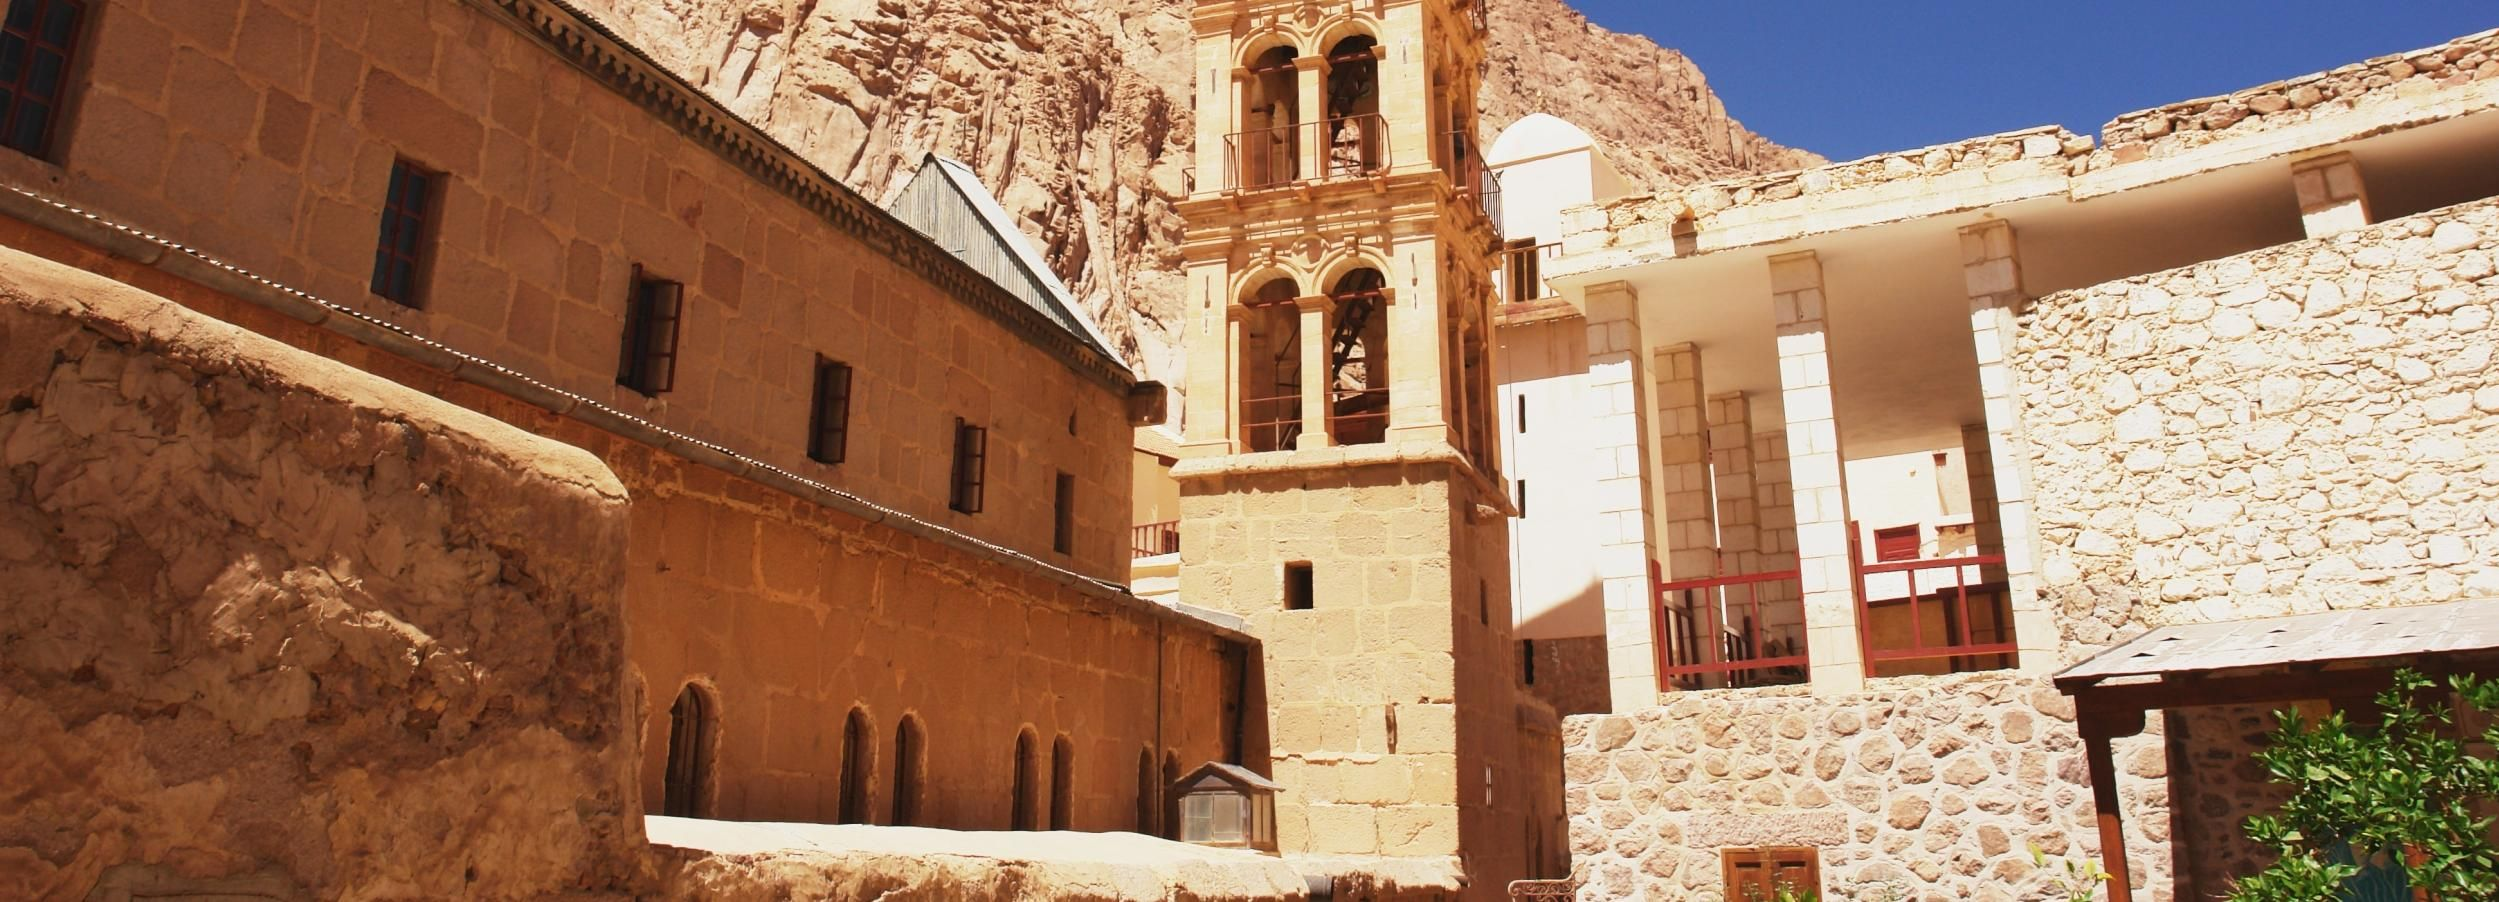 St. Catherine's Monastery: Day Trip from Eilat